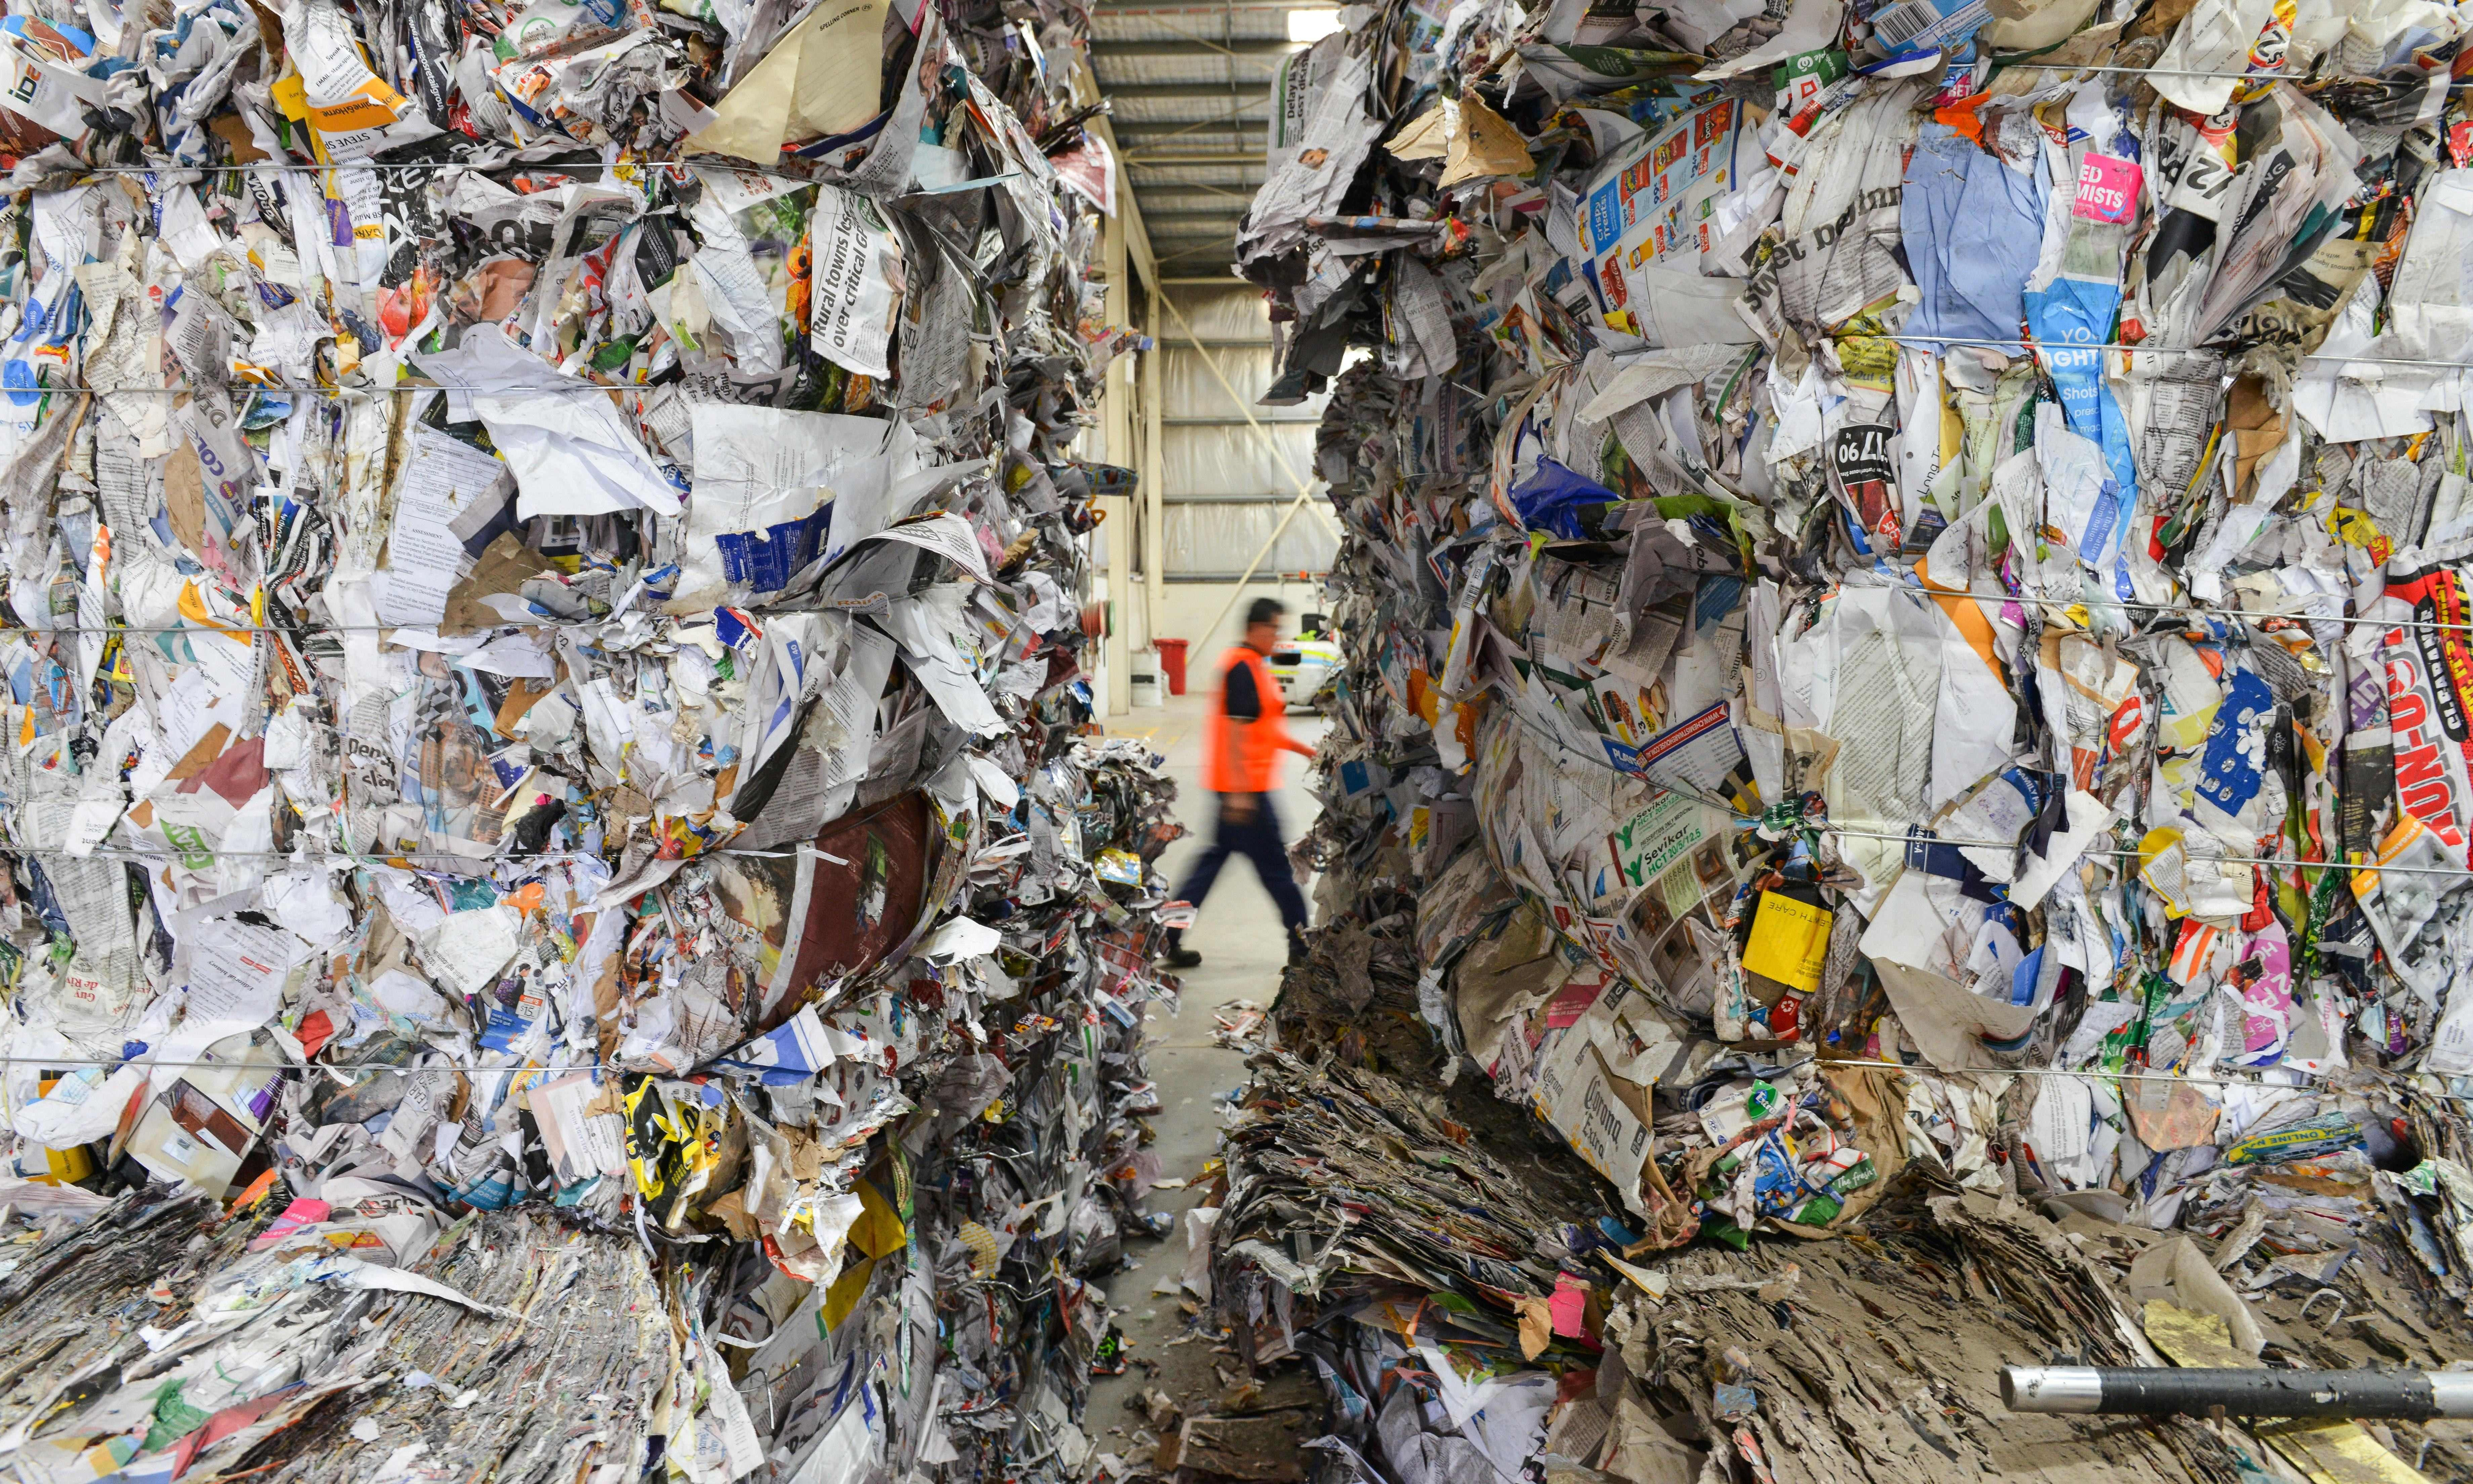 20,000 tonnes of recycling dumped in Victorian landfill during SKM ban